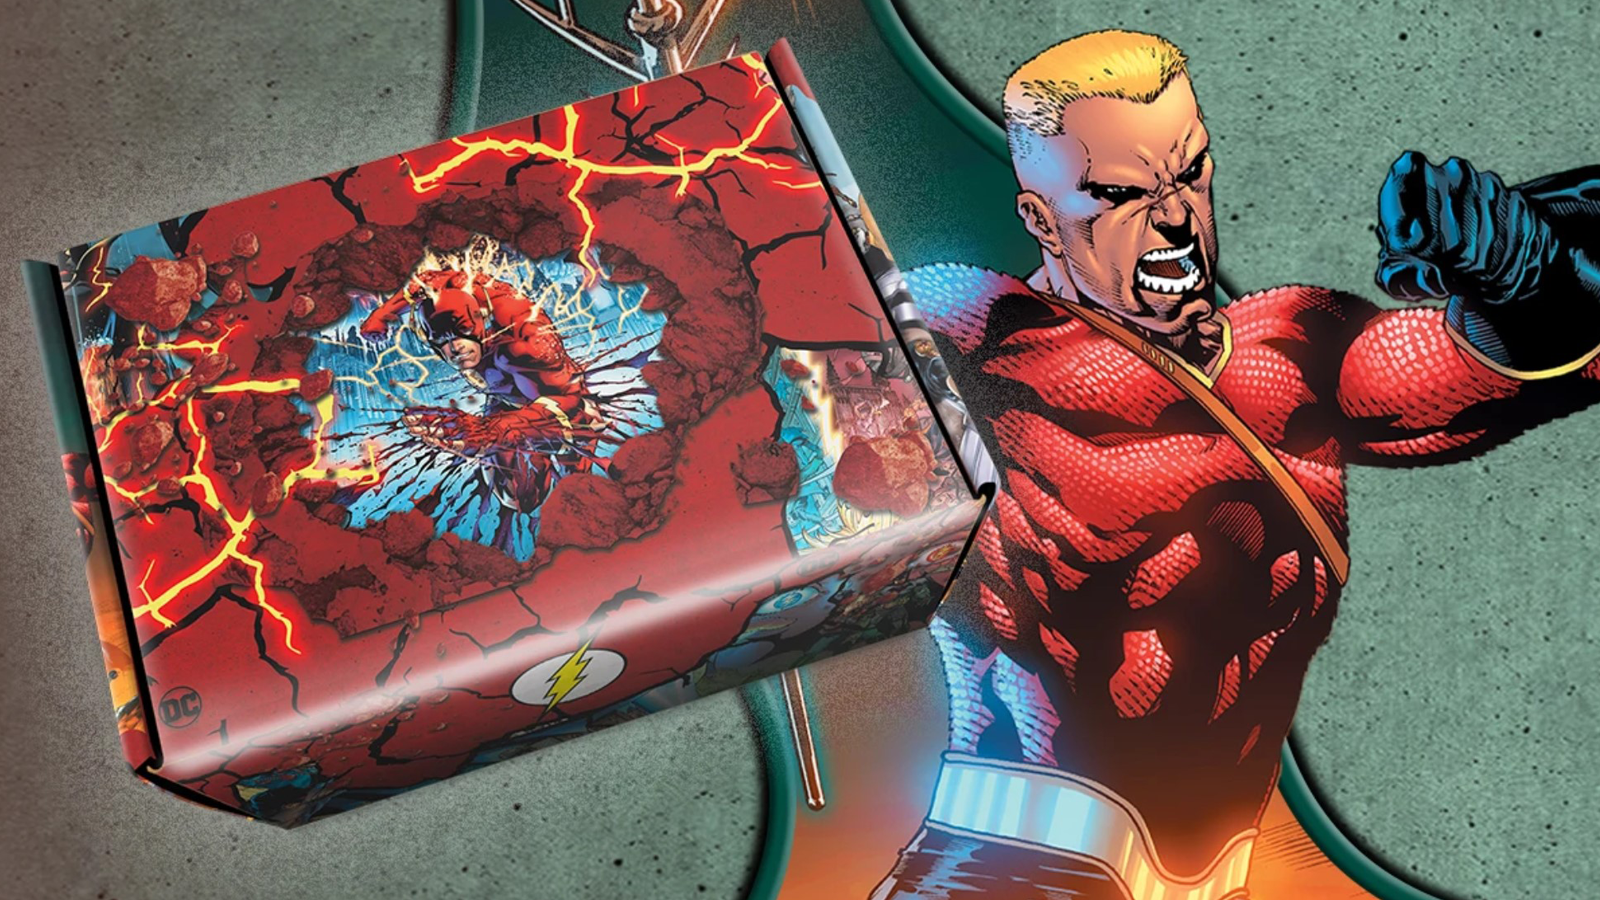 The Flash holding up a sample World's Finest Collection box